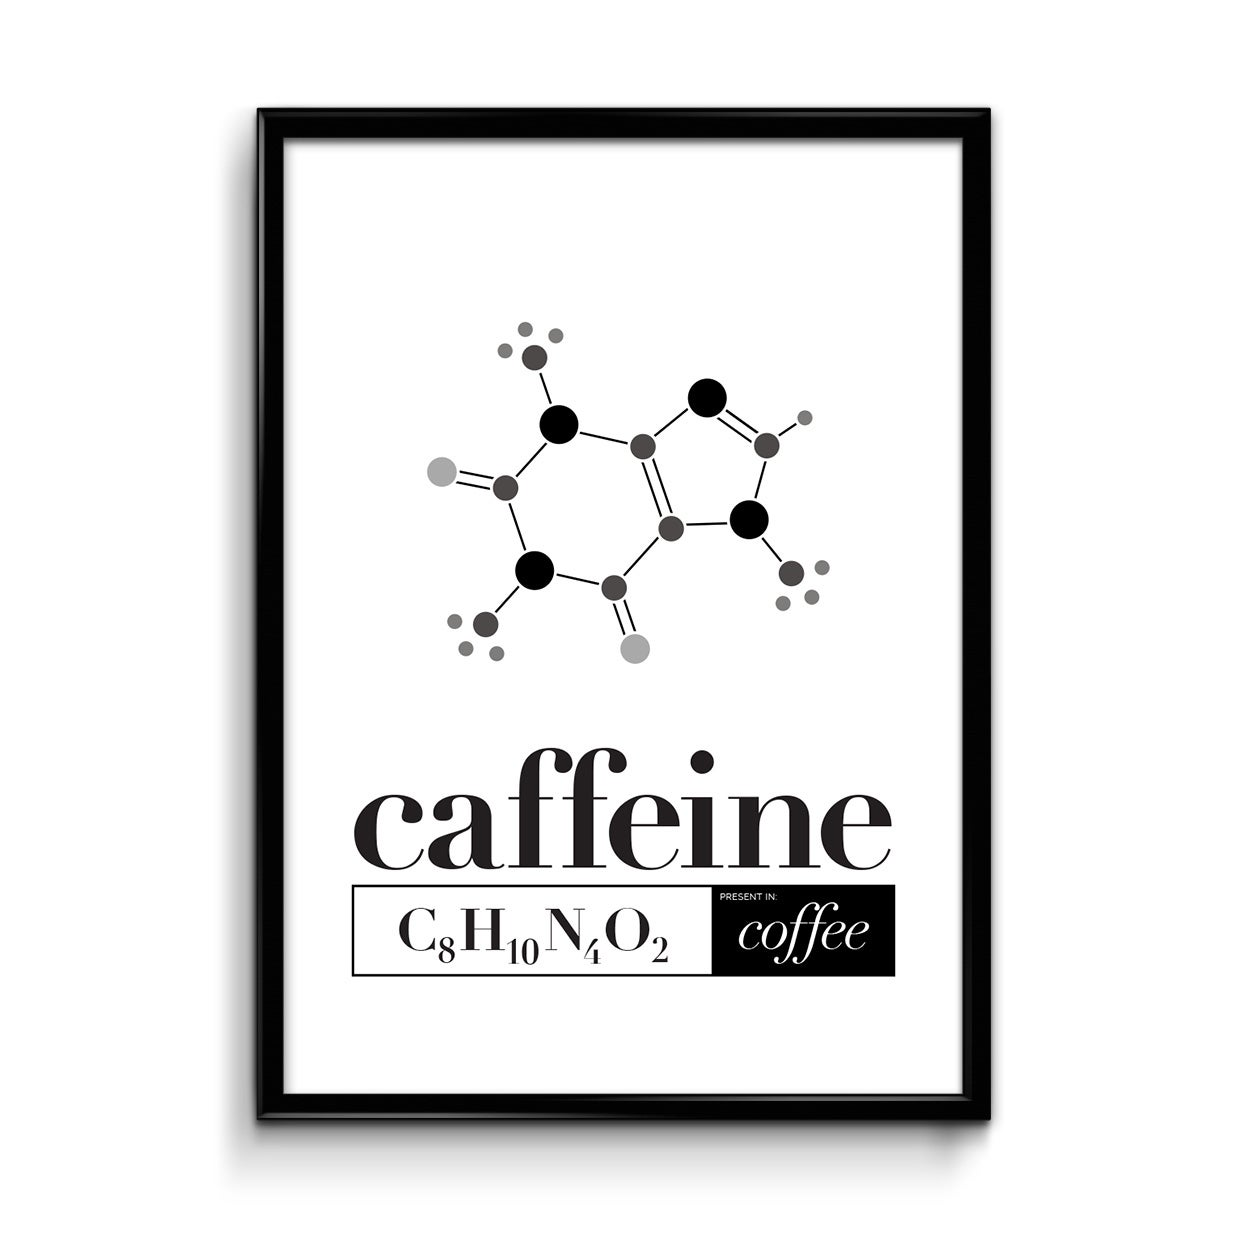 Image result for caffeine chemistry